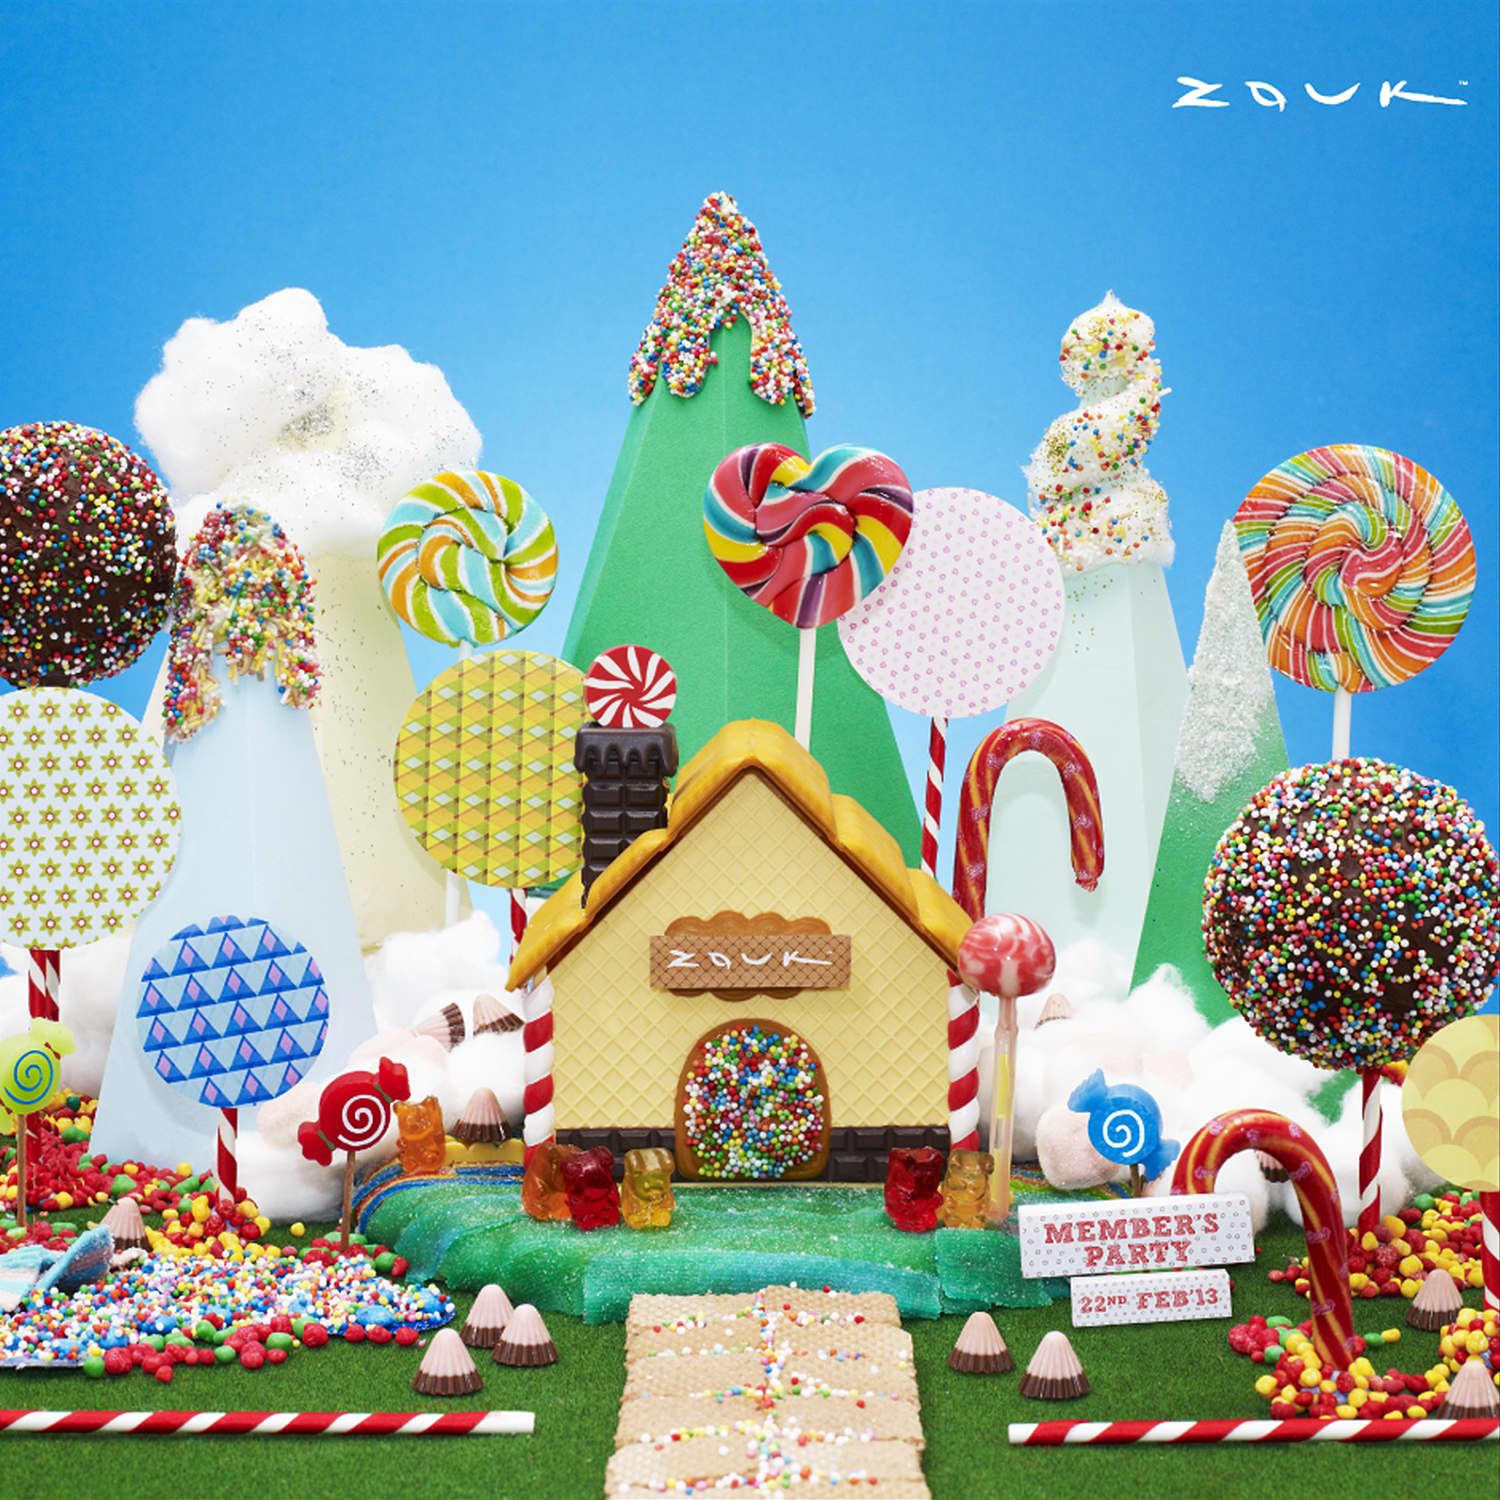 The Zouk Candyland